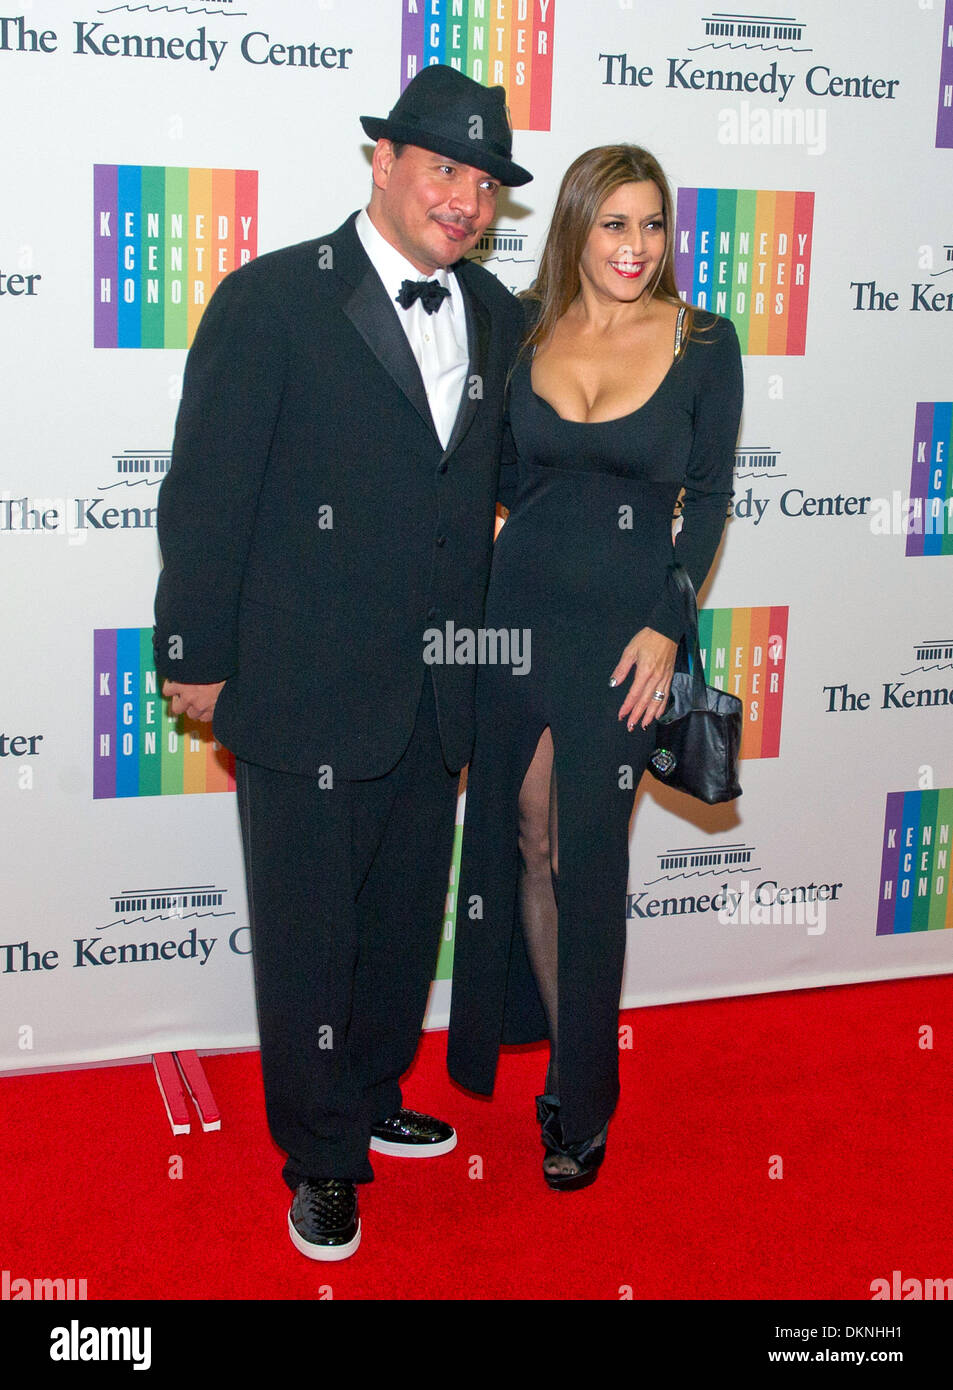 Washington DC, USA. 7th Dec, 2013. Mix Master Mike and Diane Copeland arrive for the formal Artist's Dinner honoring Stock Photo